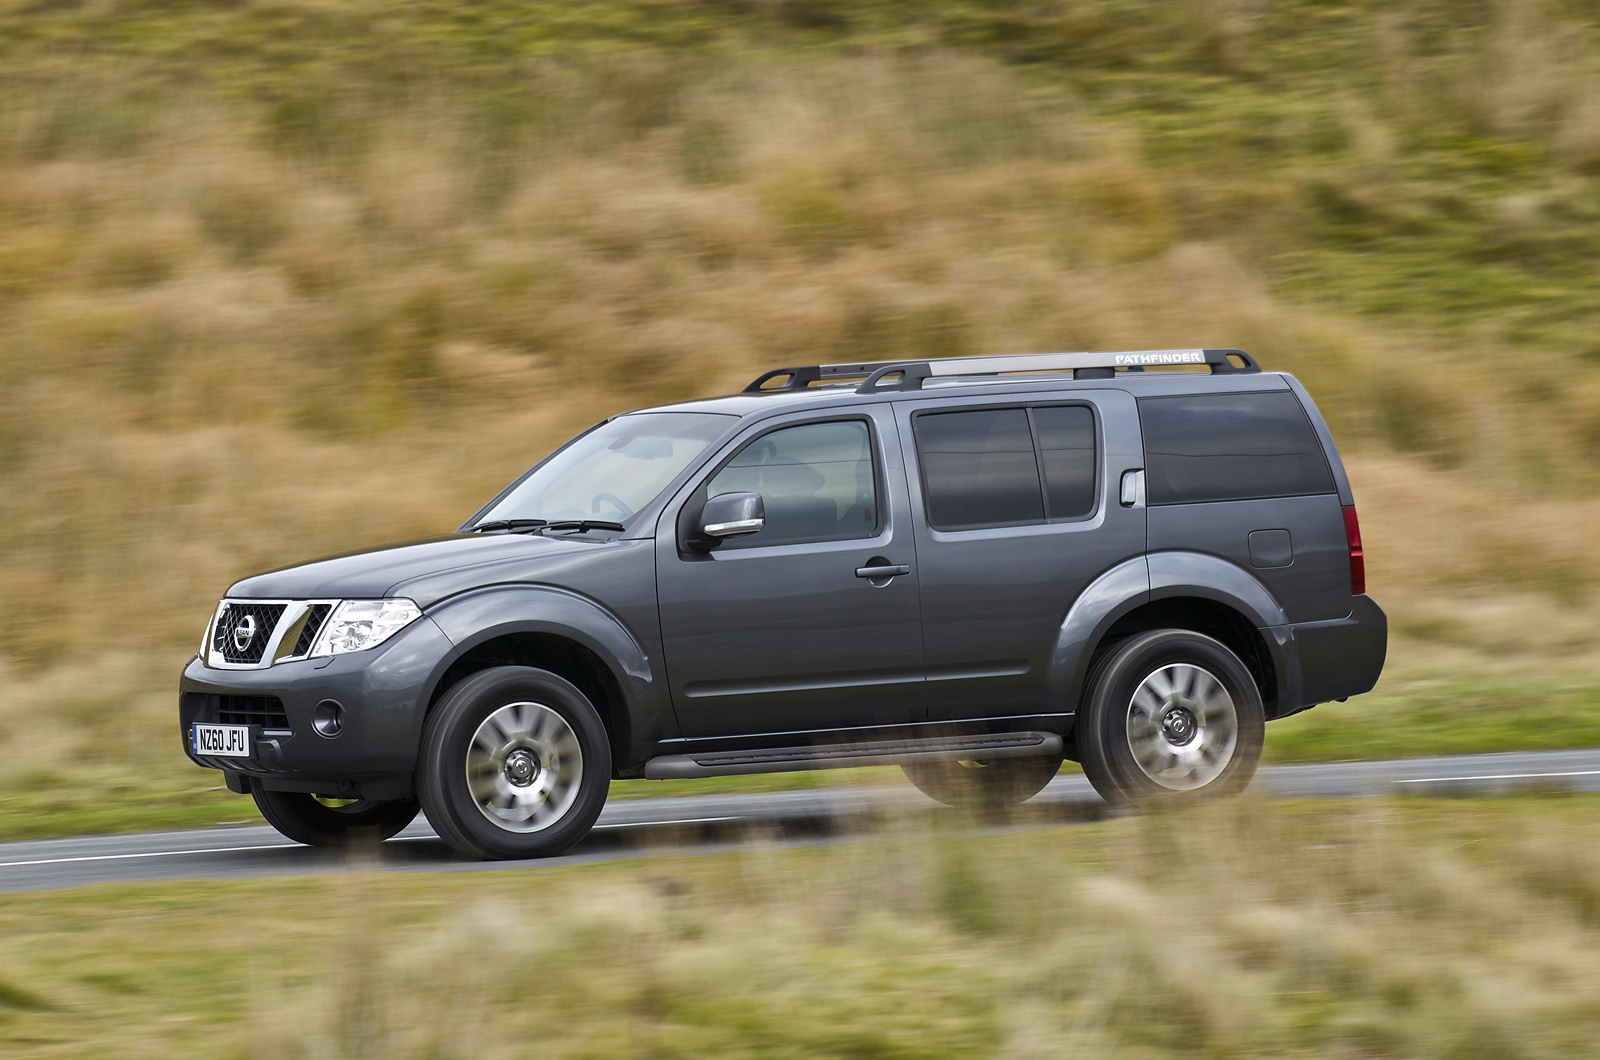 Images of Off Road Parts Nissan Pathfinder